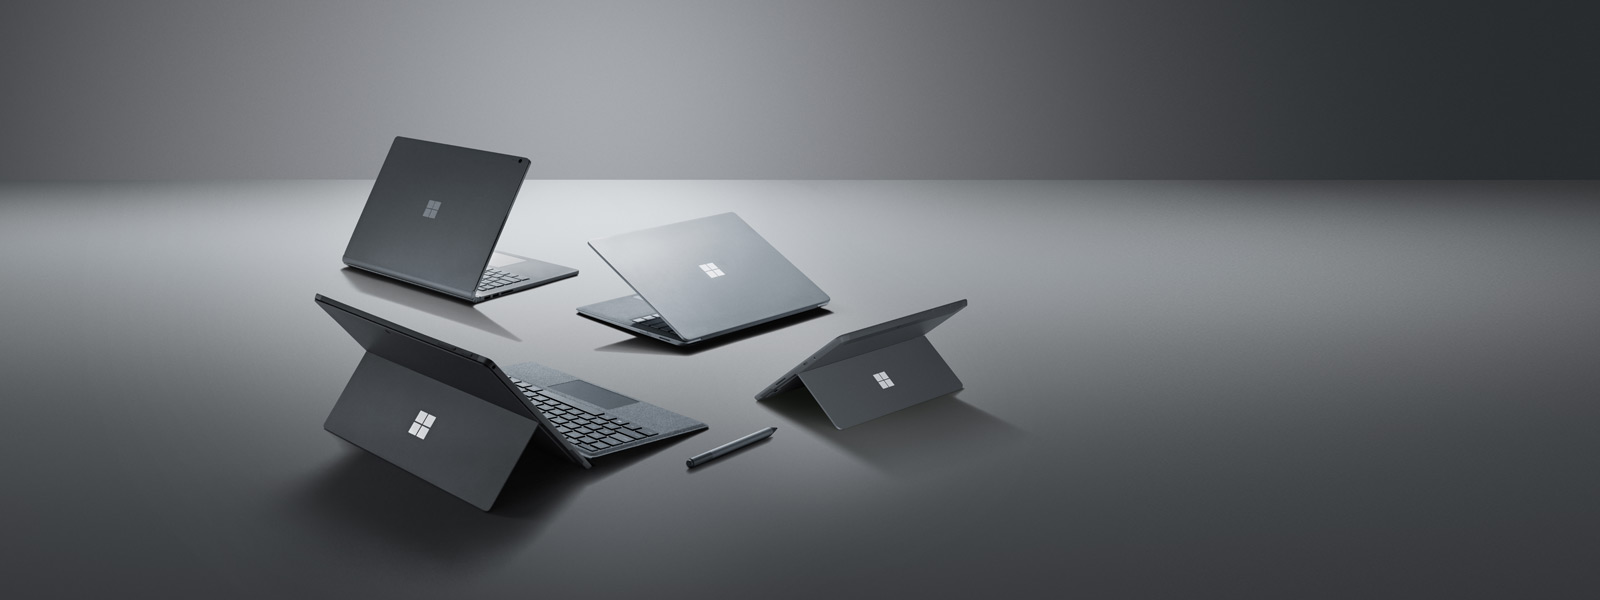 Surface family of computers with Surface Pen